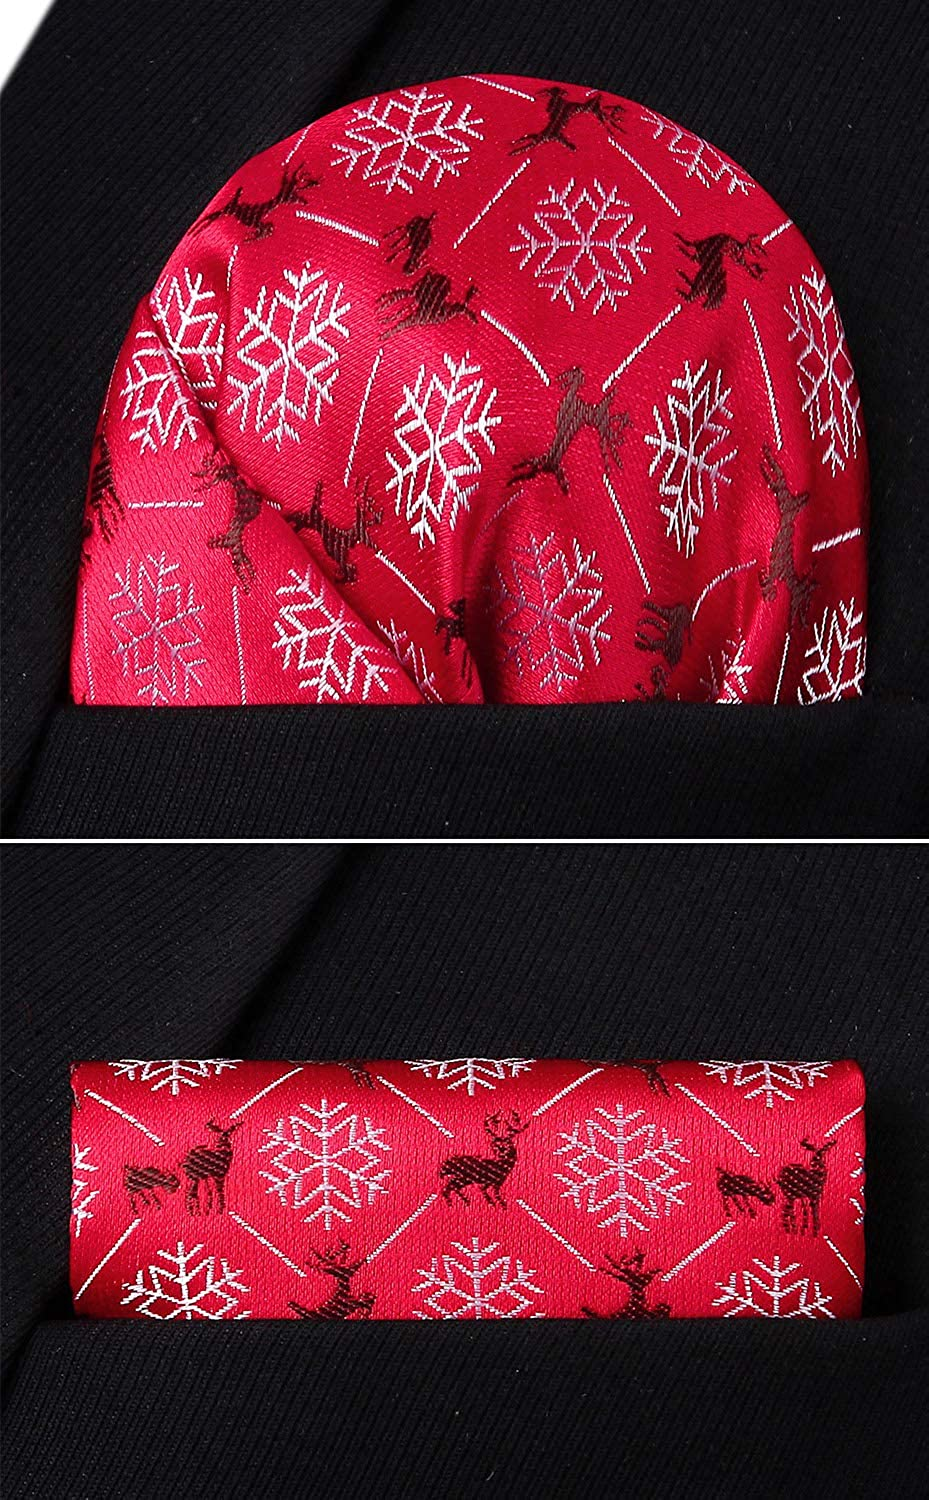 Enlision Mens Christmas Bowties Jacquard Woven Party Self Bow Tie Set